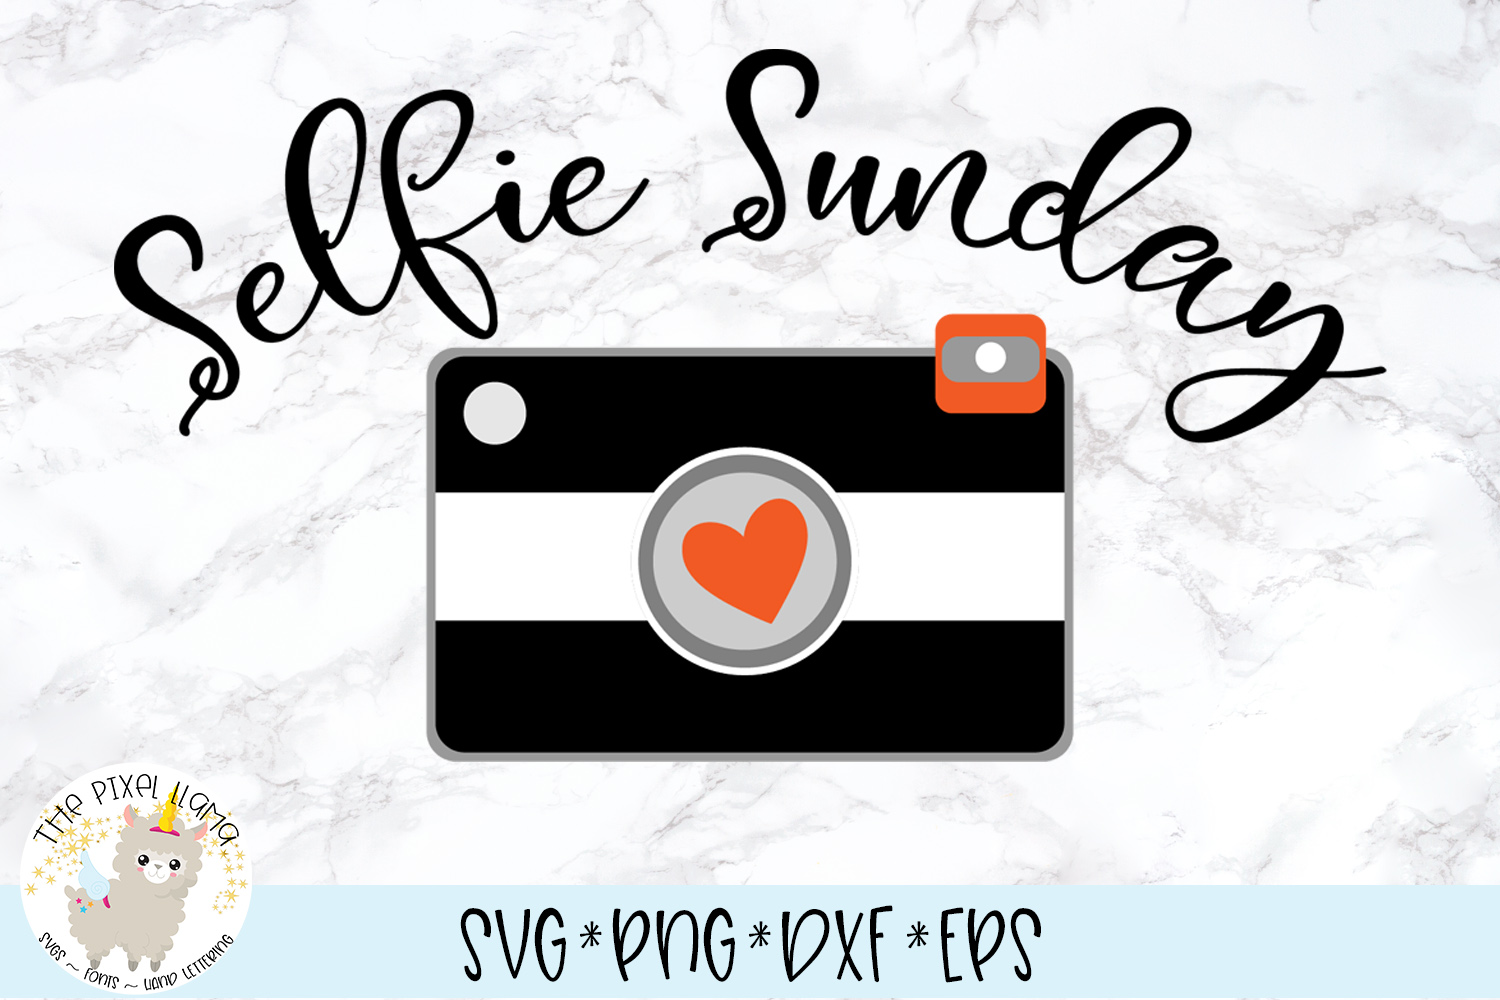 Selfie Sunday Photography SVG Cut File